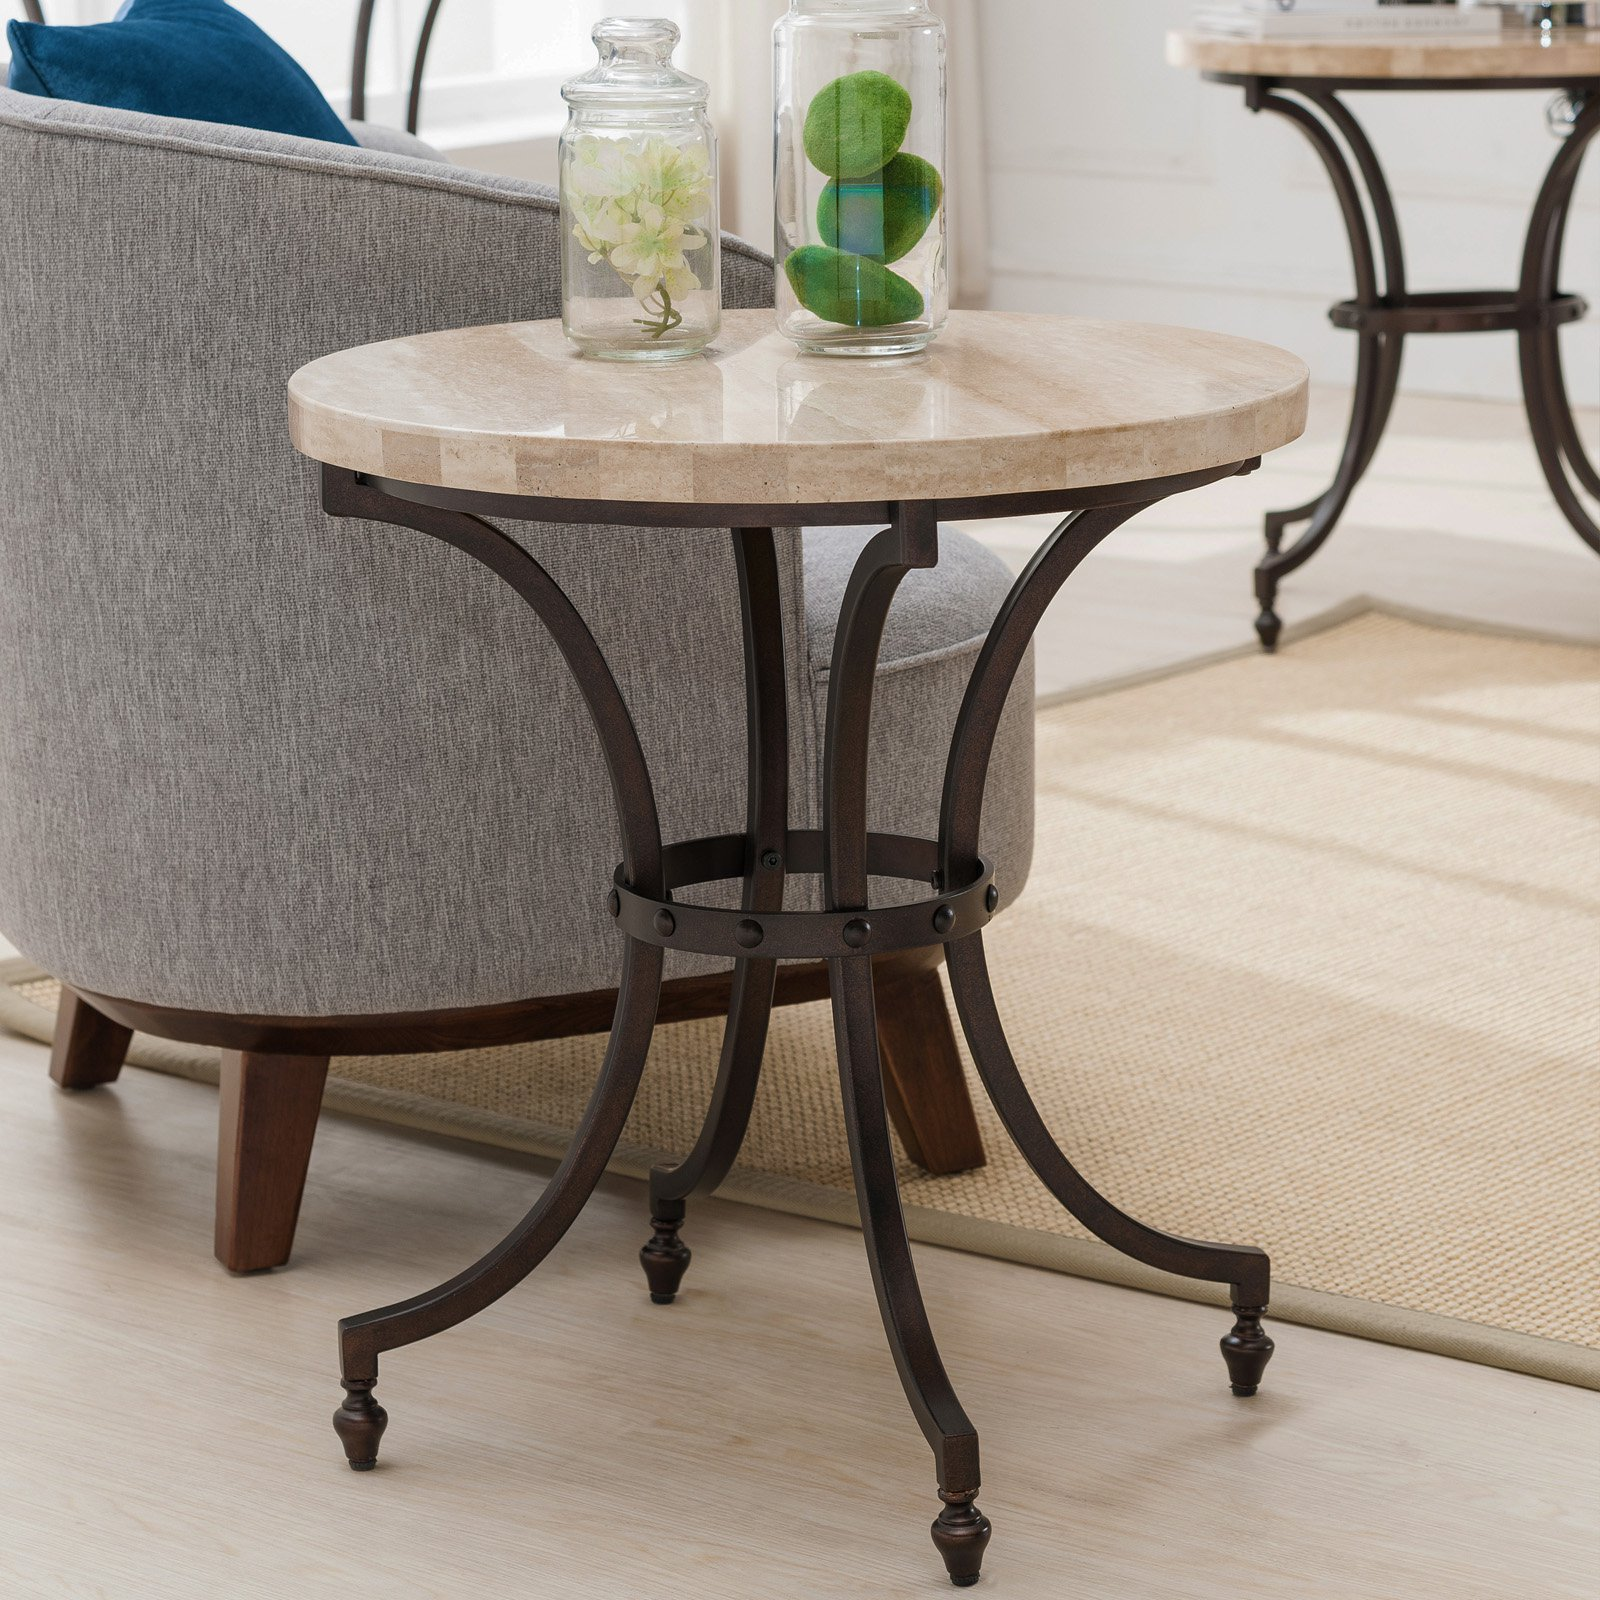 Leick Home Round Travertine Stone Top Side Table with Rubbed Bronze Metal Base